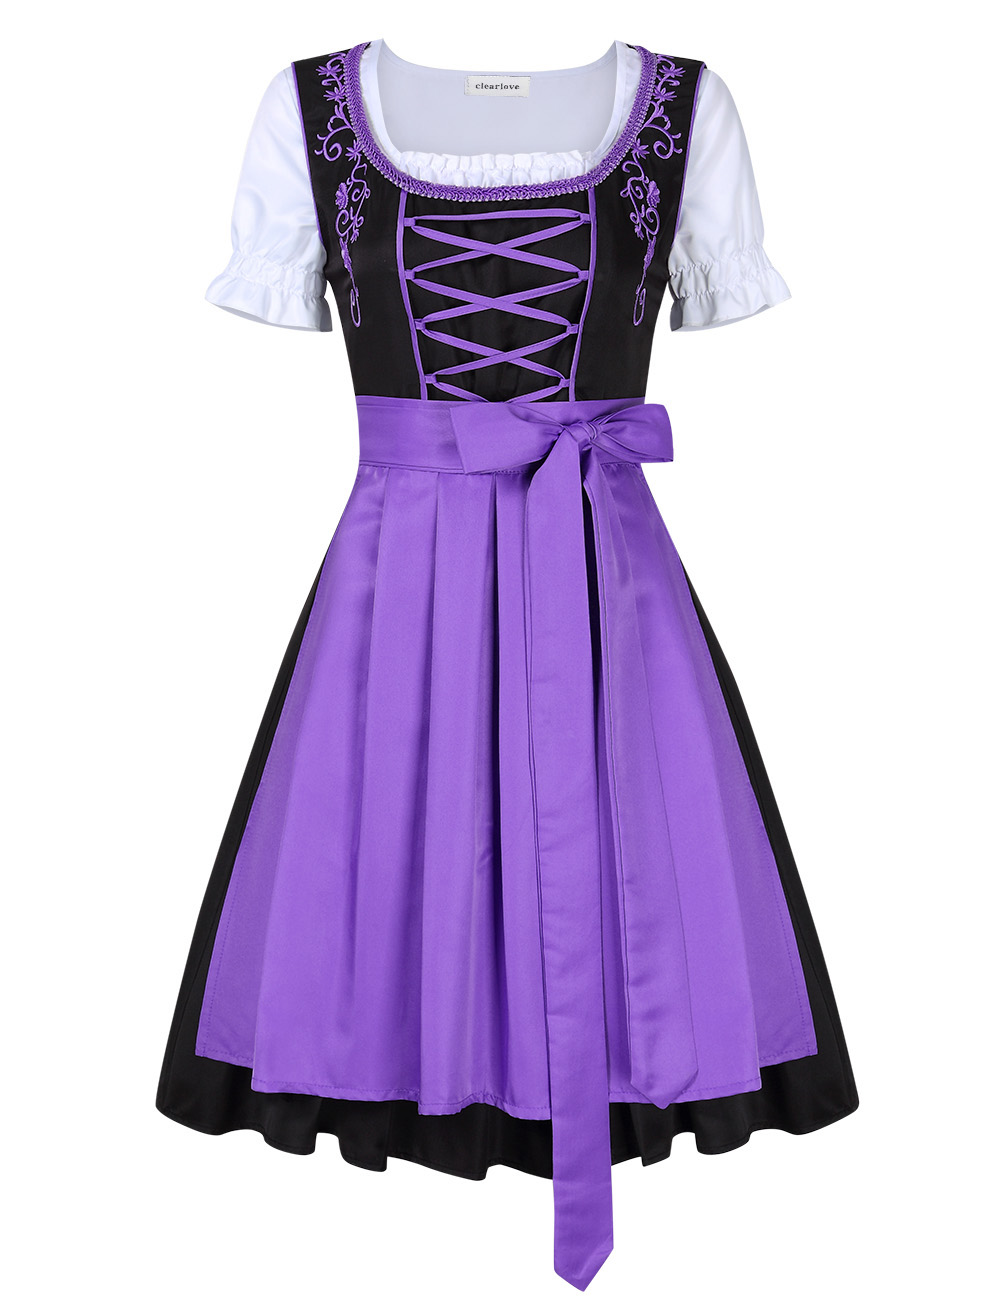 Clearlove Women's Classic Dress Three Pieces Suit for German Traditional Oktoberfest Costumes